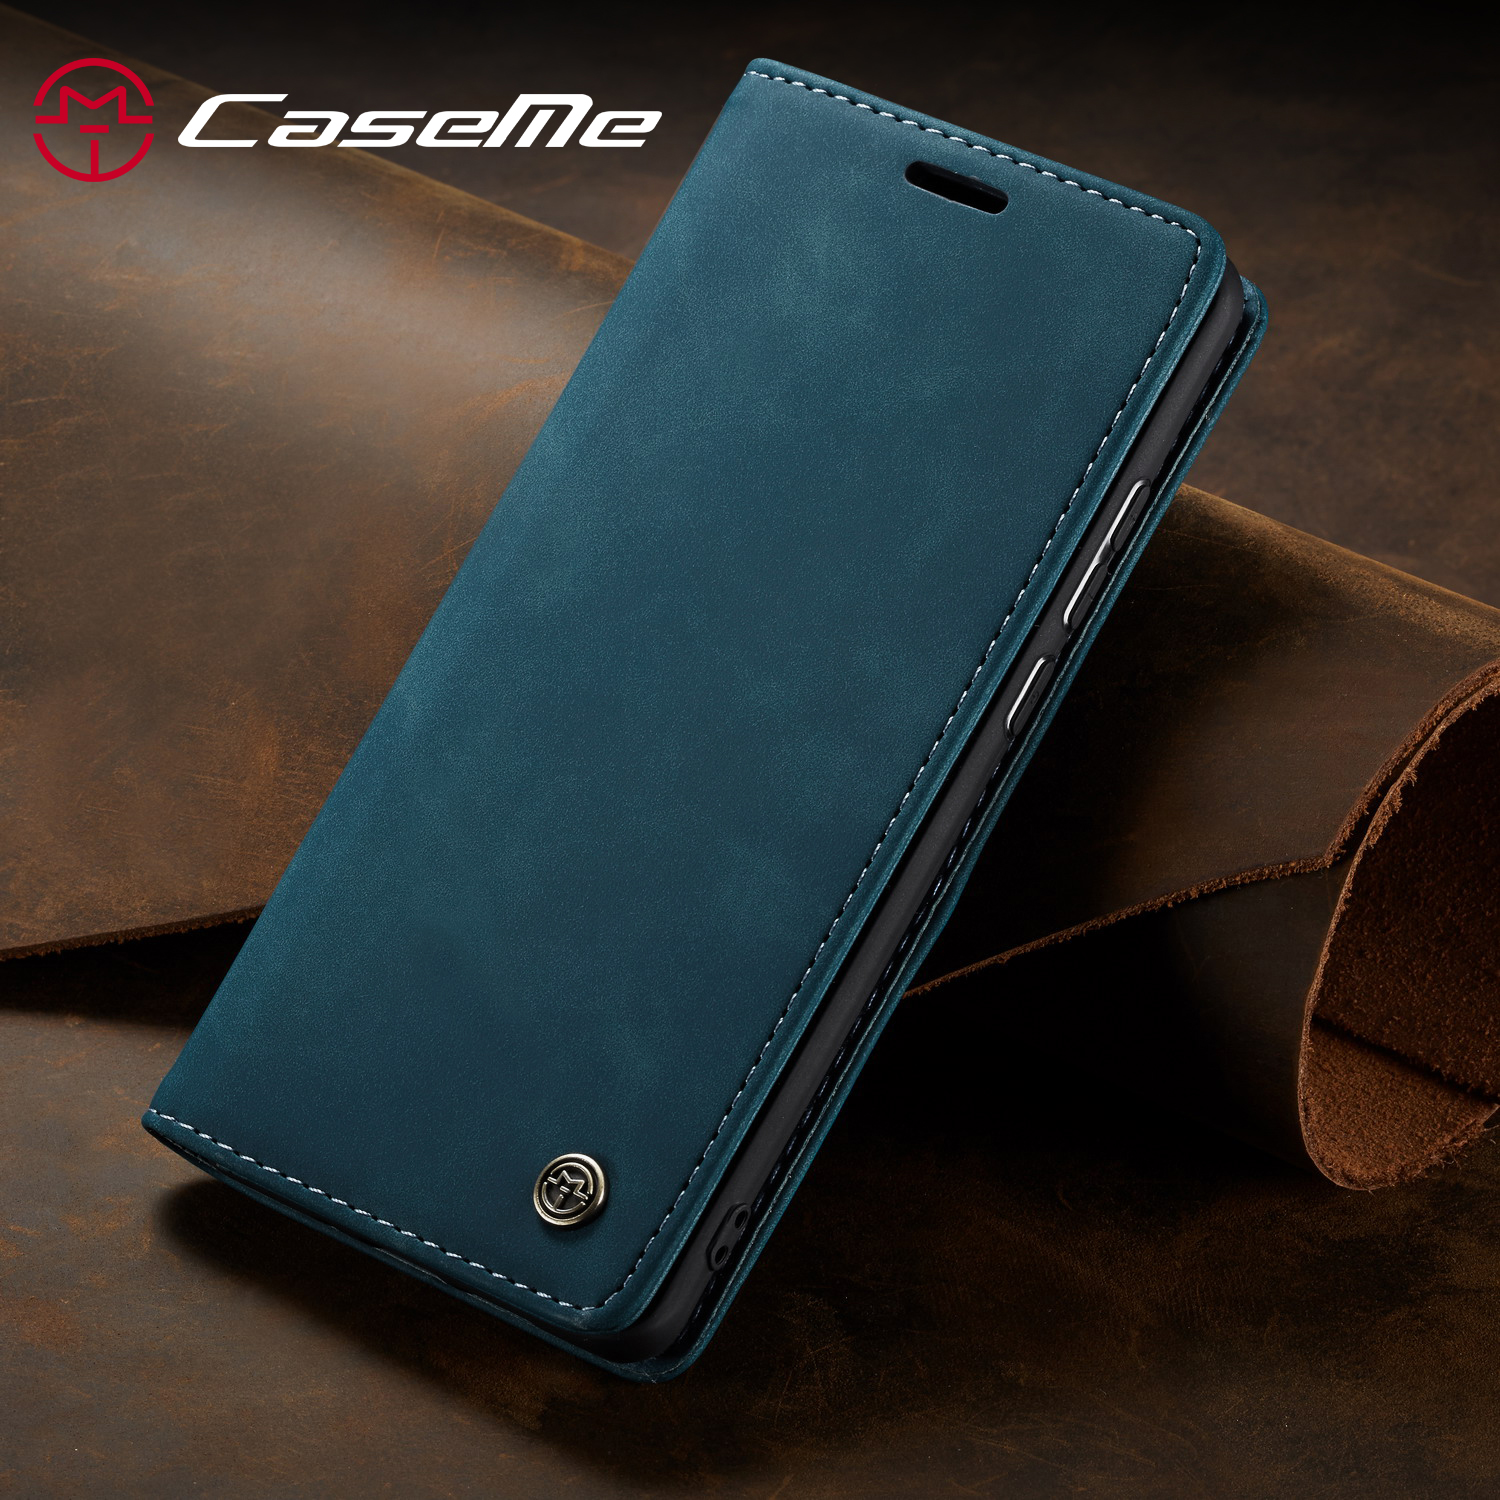 For <font><b>Samsung</b></font> A20 A30 Luxury Leather Case <font><b>Samsung</b></font> A40 Case Flip Retro Wallet Case For <font><b>Hoesje</b></font> <font><b>Samsung</b></font> A10 <font><b>A50</b></font> A70 A80 M10 M20 Cover image